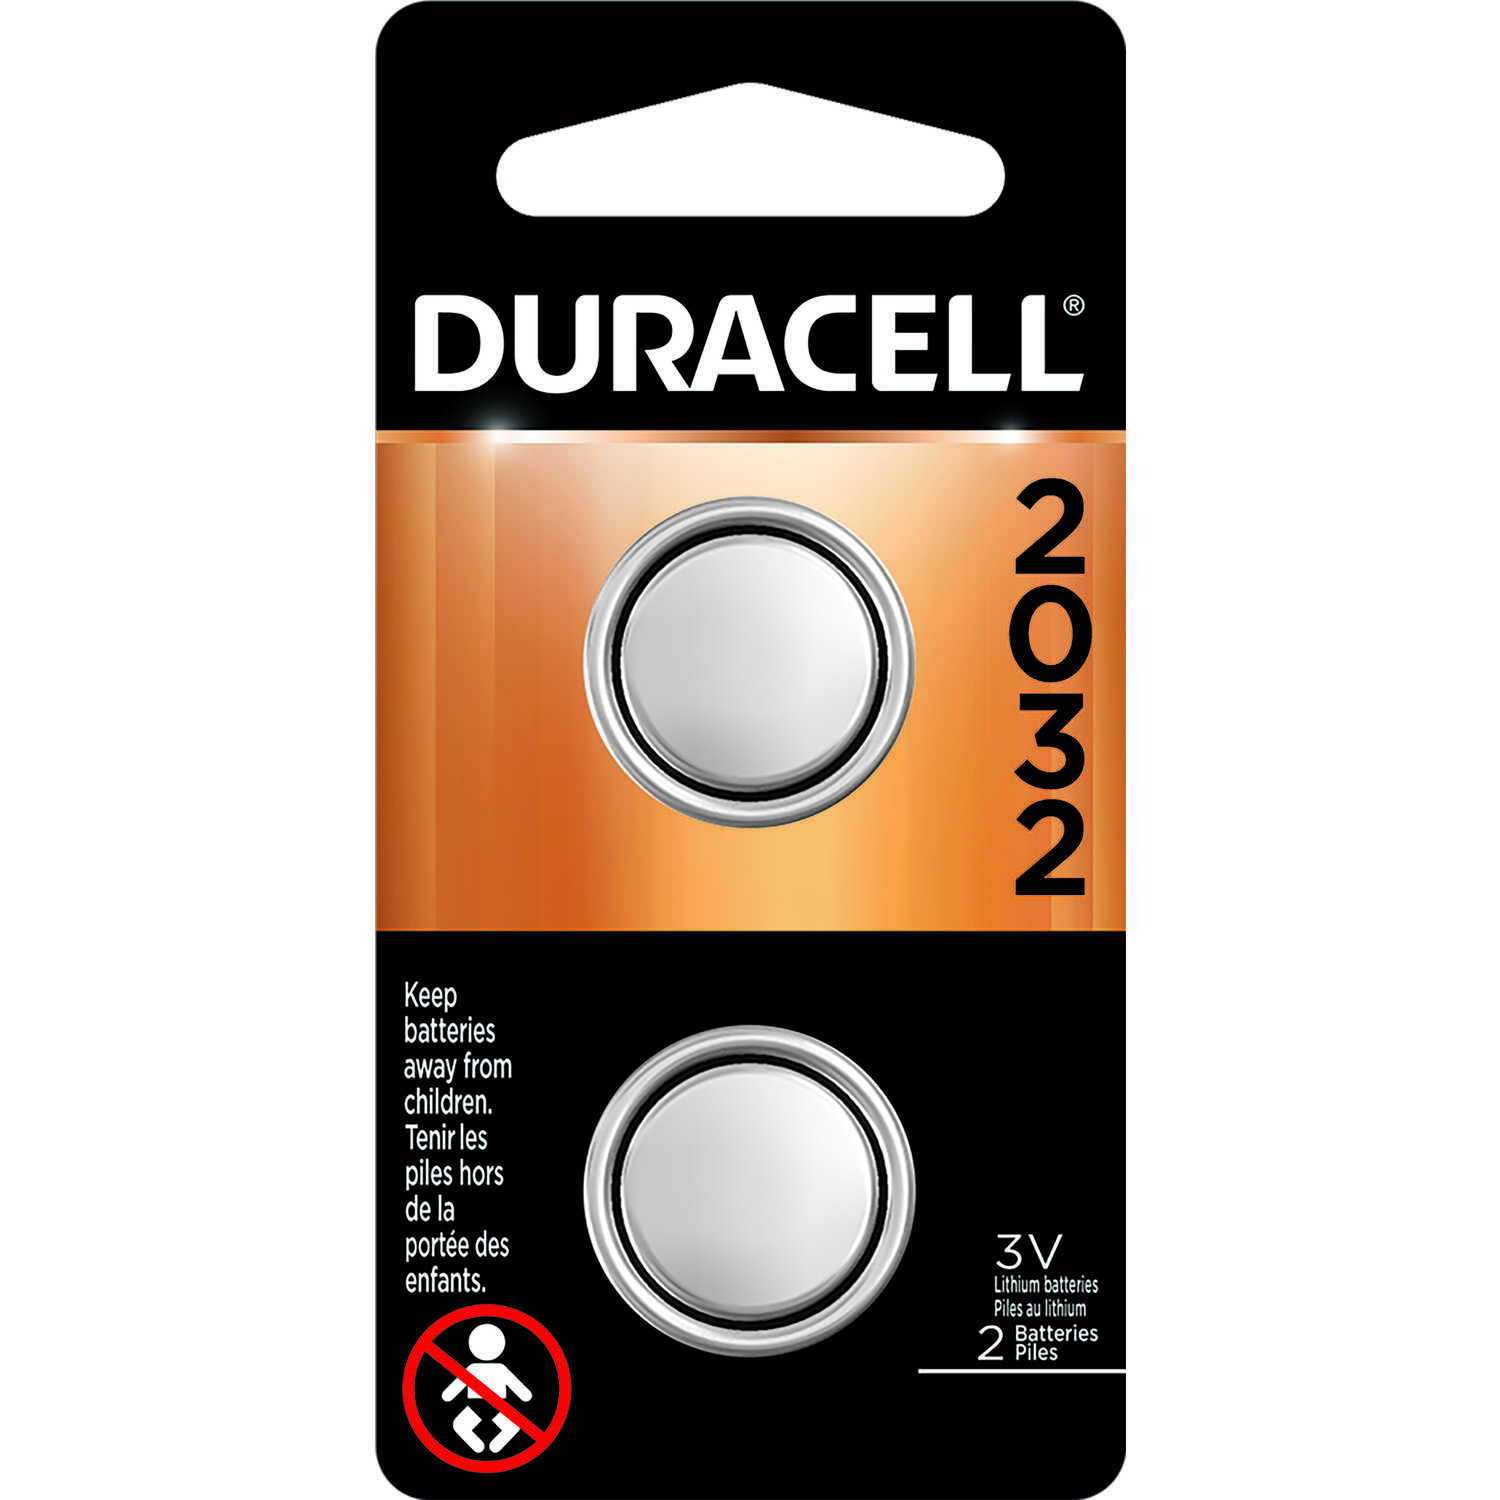 Duracell Lithium 2032 3 volt Security and Electronic Battery ...